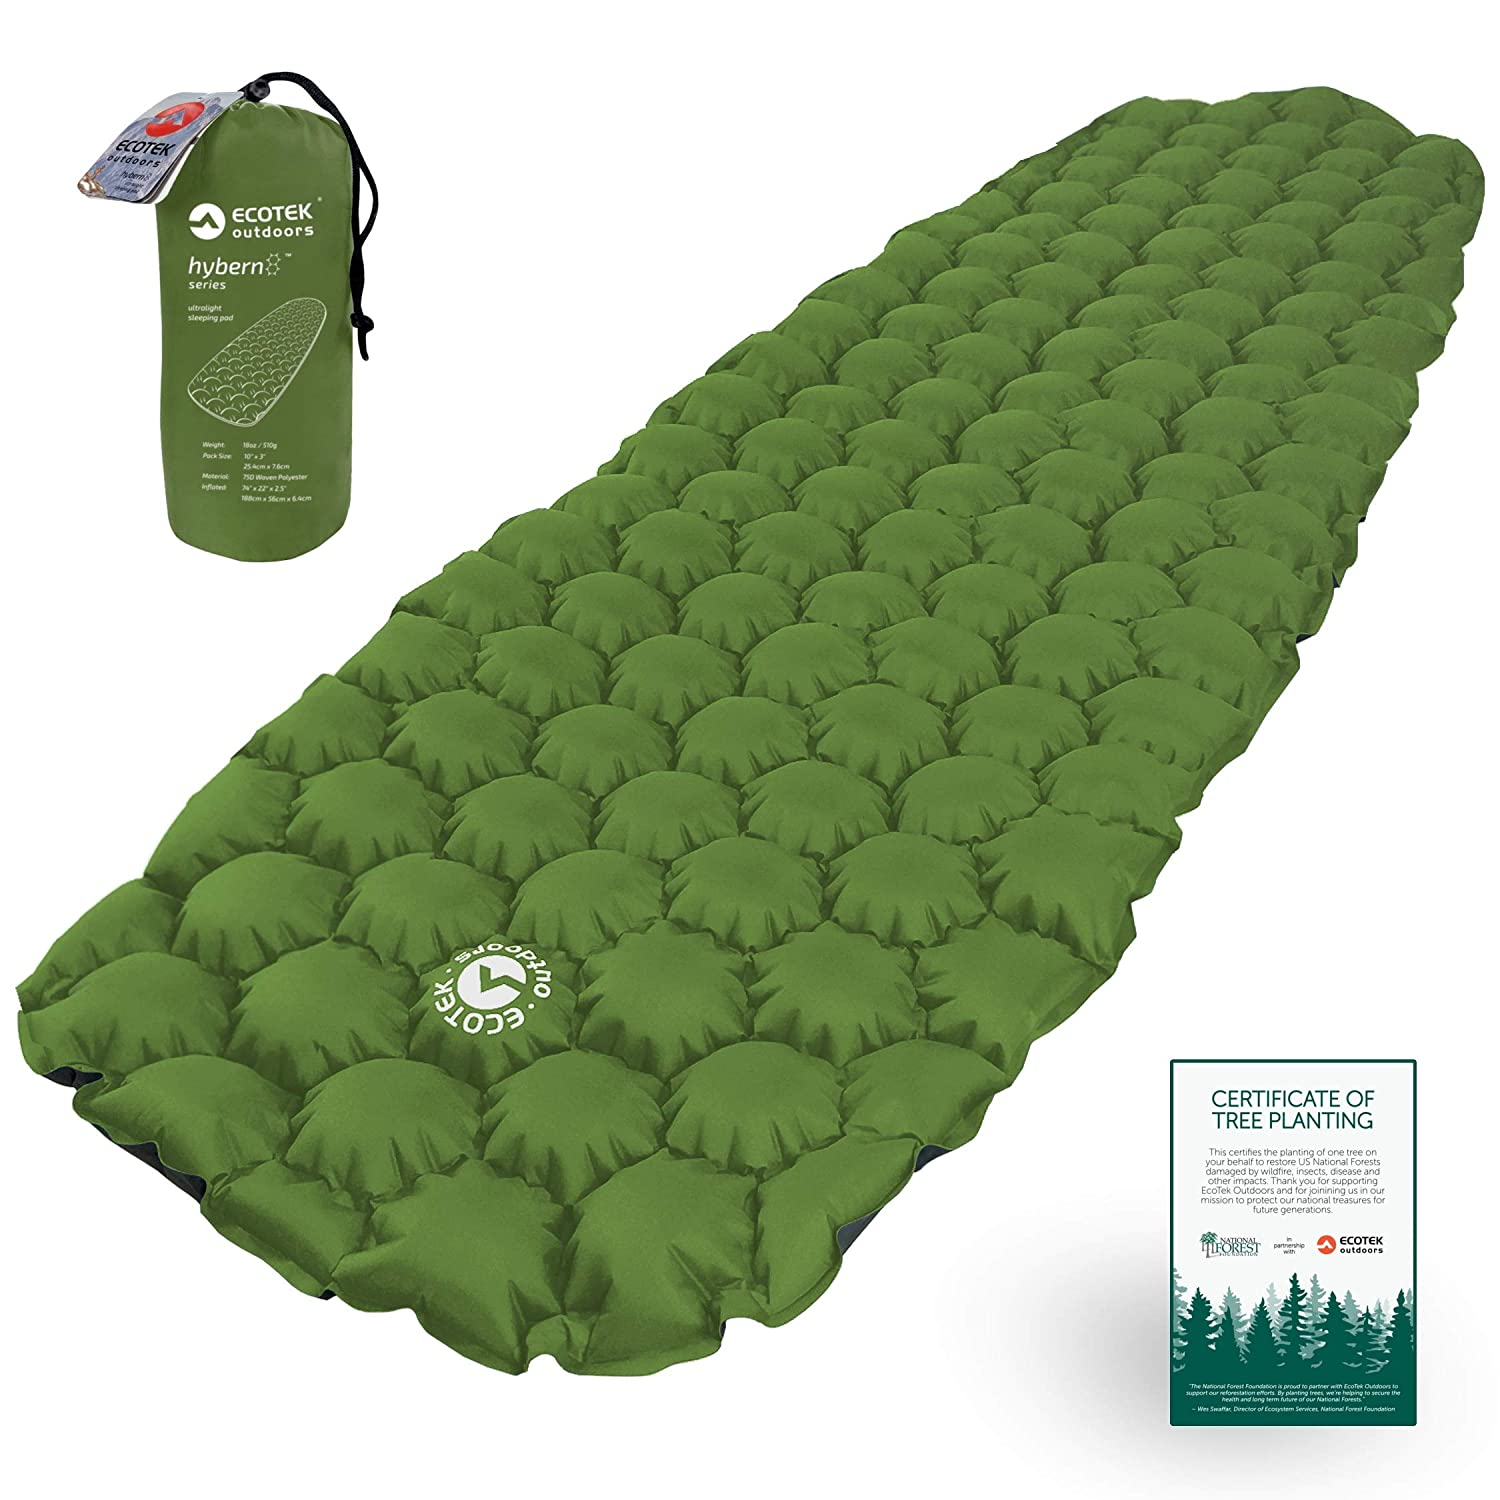 2d9f8f4c320ecf ECOTEK Outdoors Hybern8 Ultralight Inflatable Sleeping Pad for Hiking  Backpacking and Camping - Contoured FlexCell Design - Perfect for Sleeping  Bags and ...